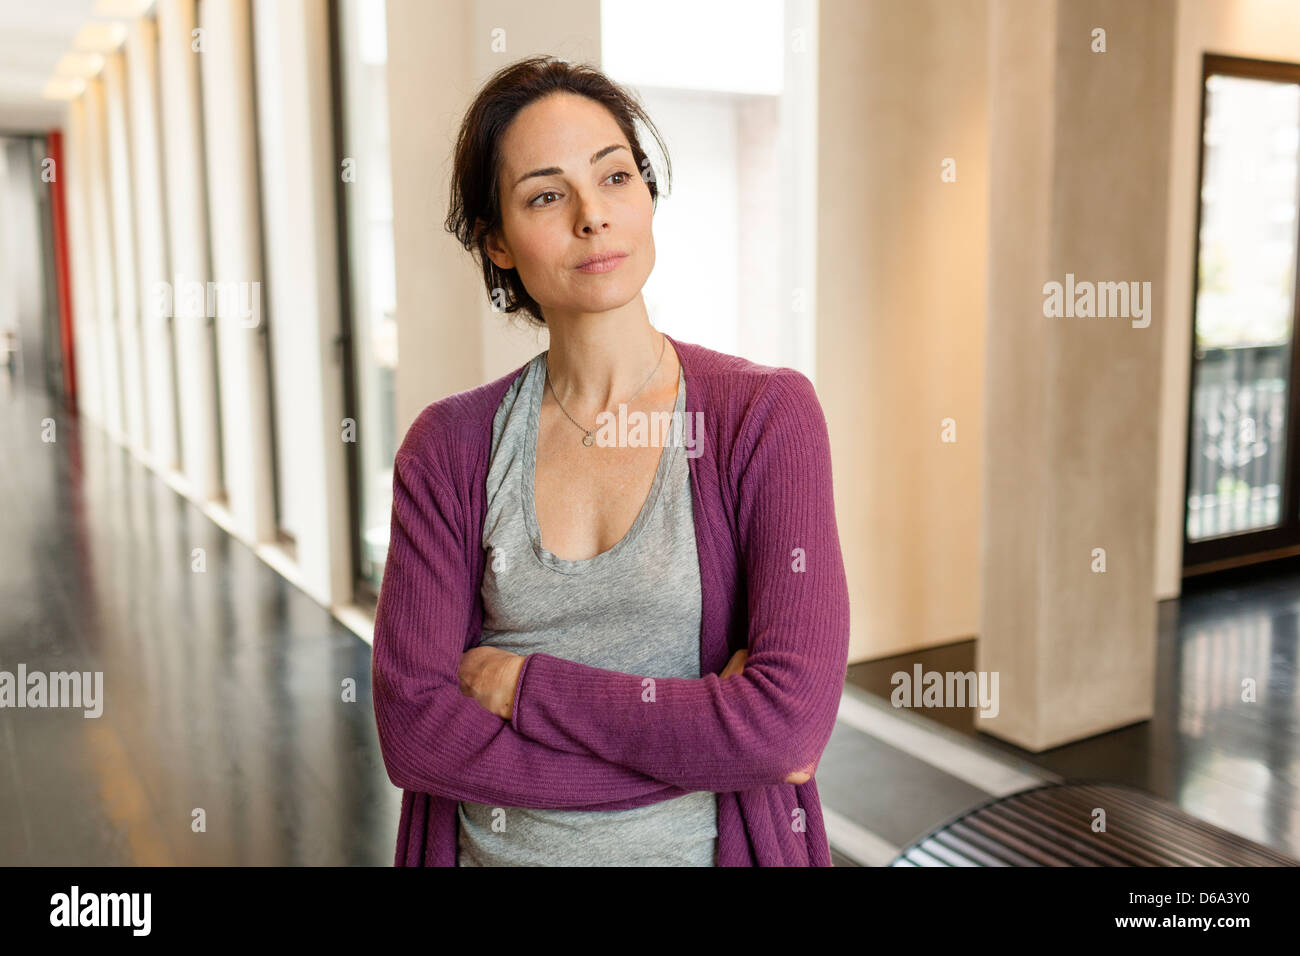 Woman standing in hallway - Stock Image